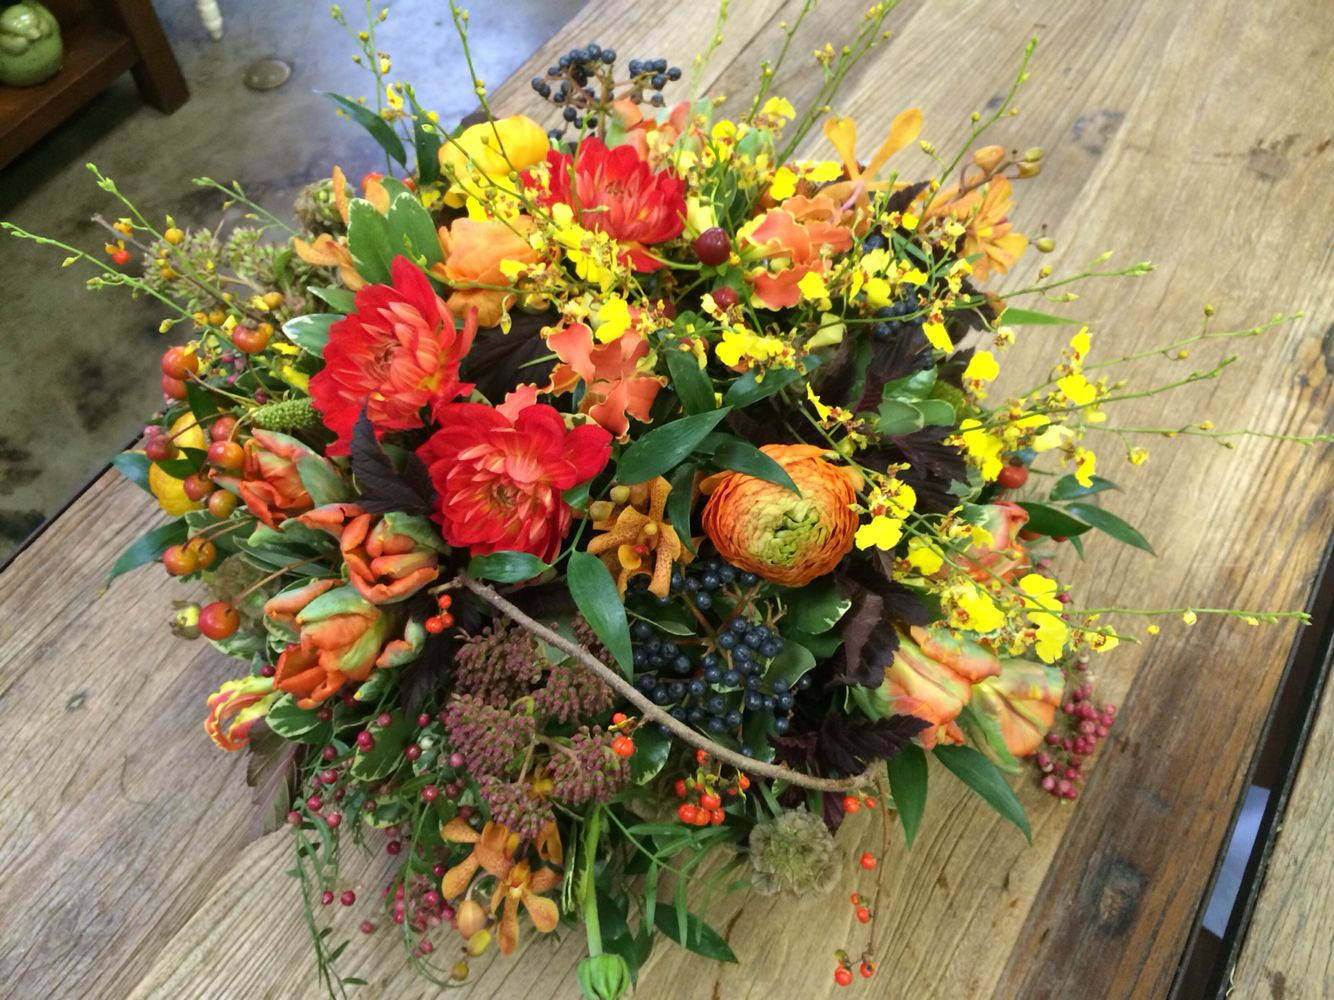 Gorgeous fall flower arrangement in sunset reds and yellows with